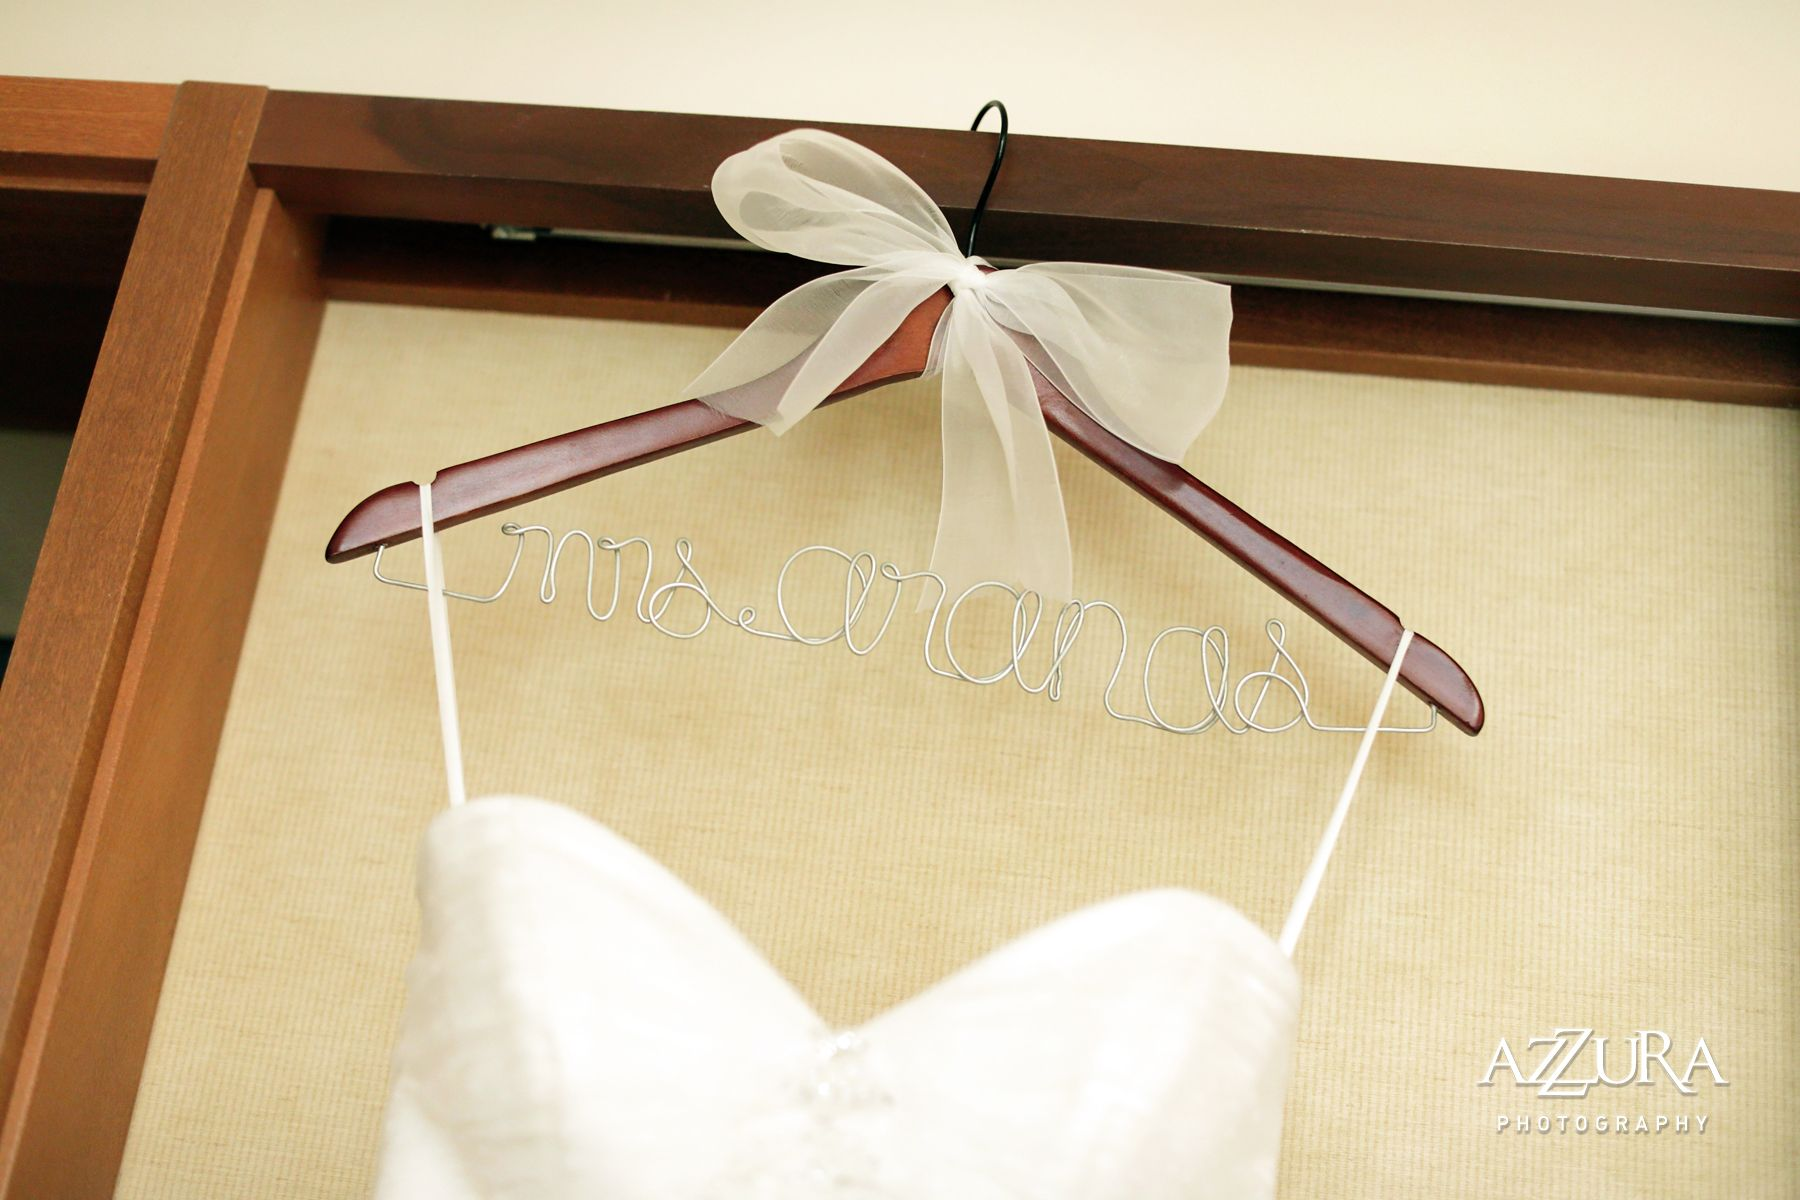 Custom wedding gown hangers are a cute touch